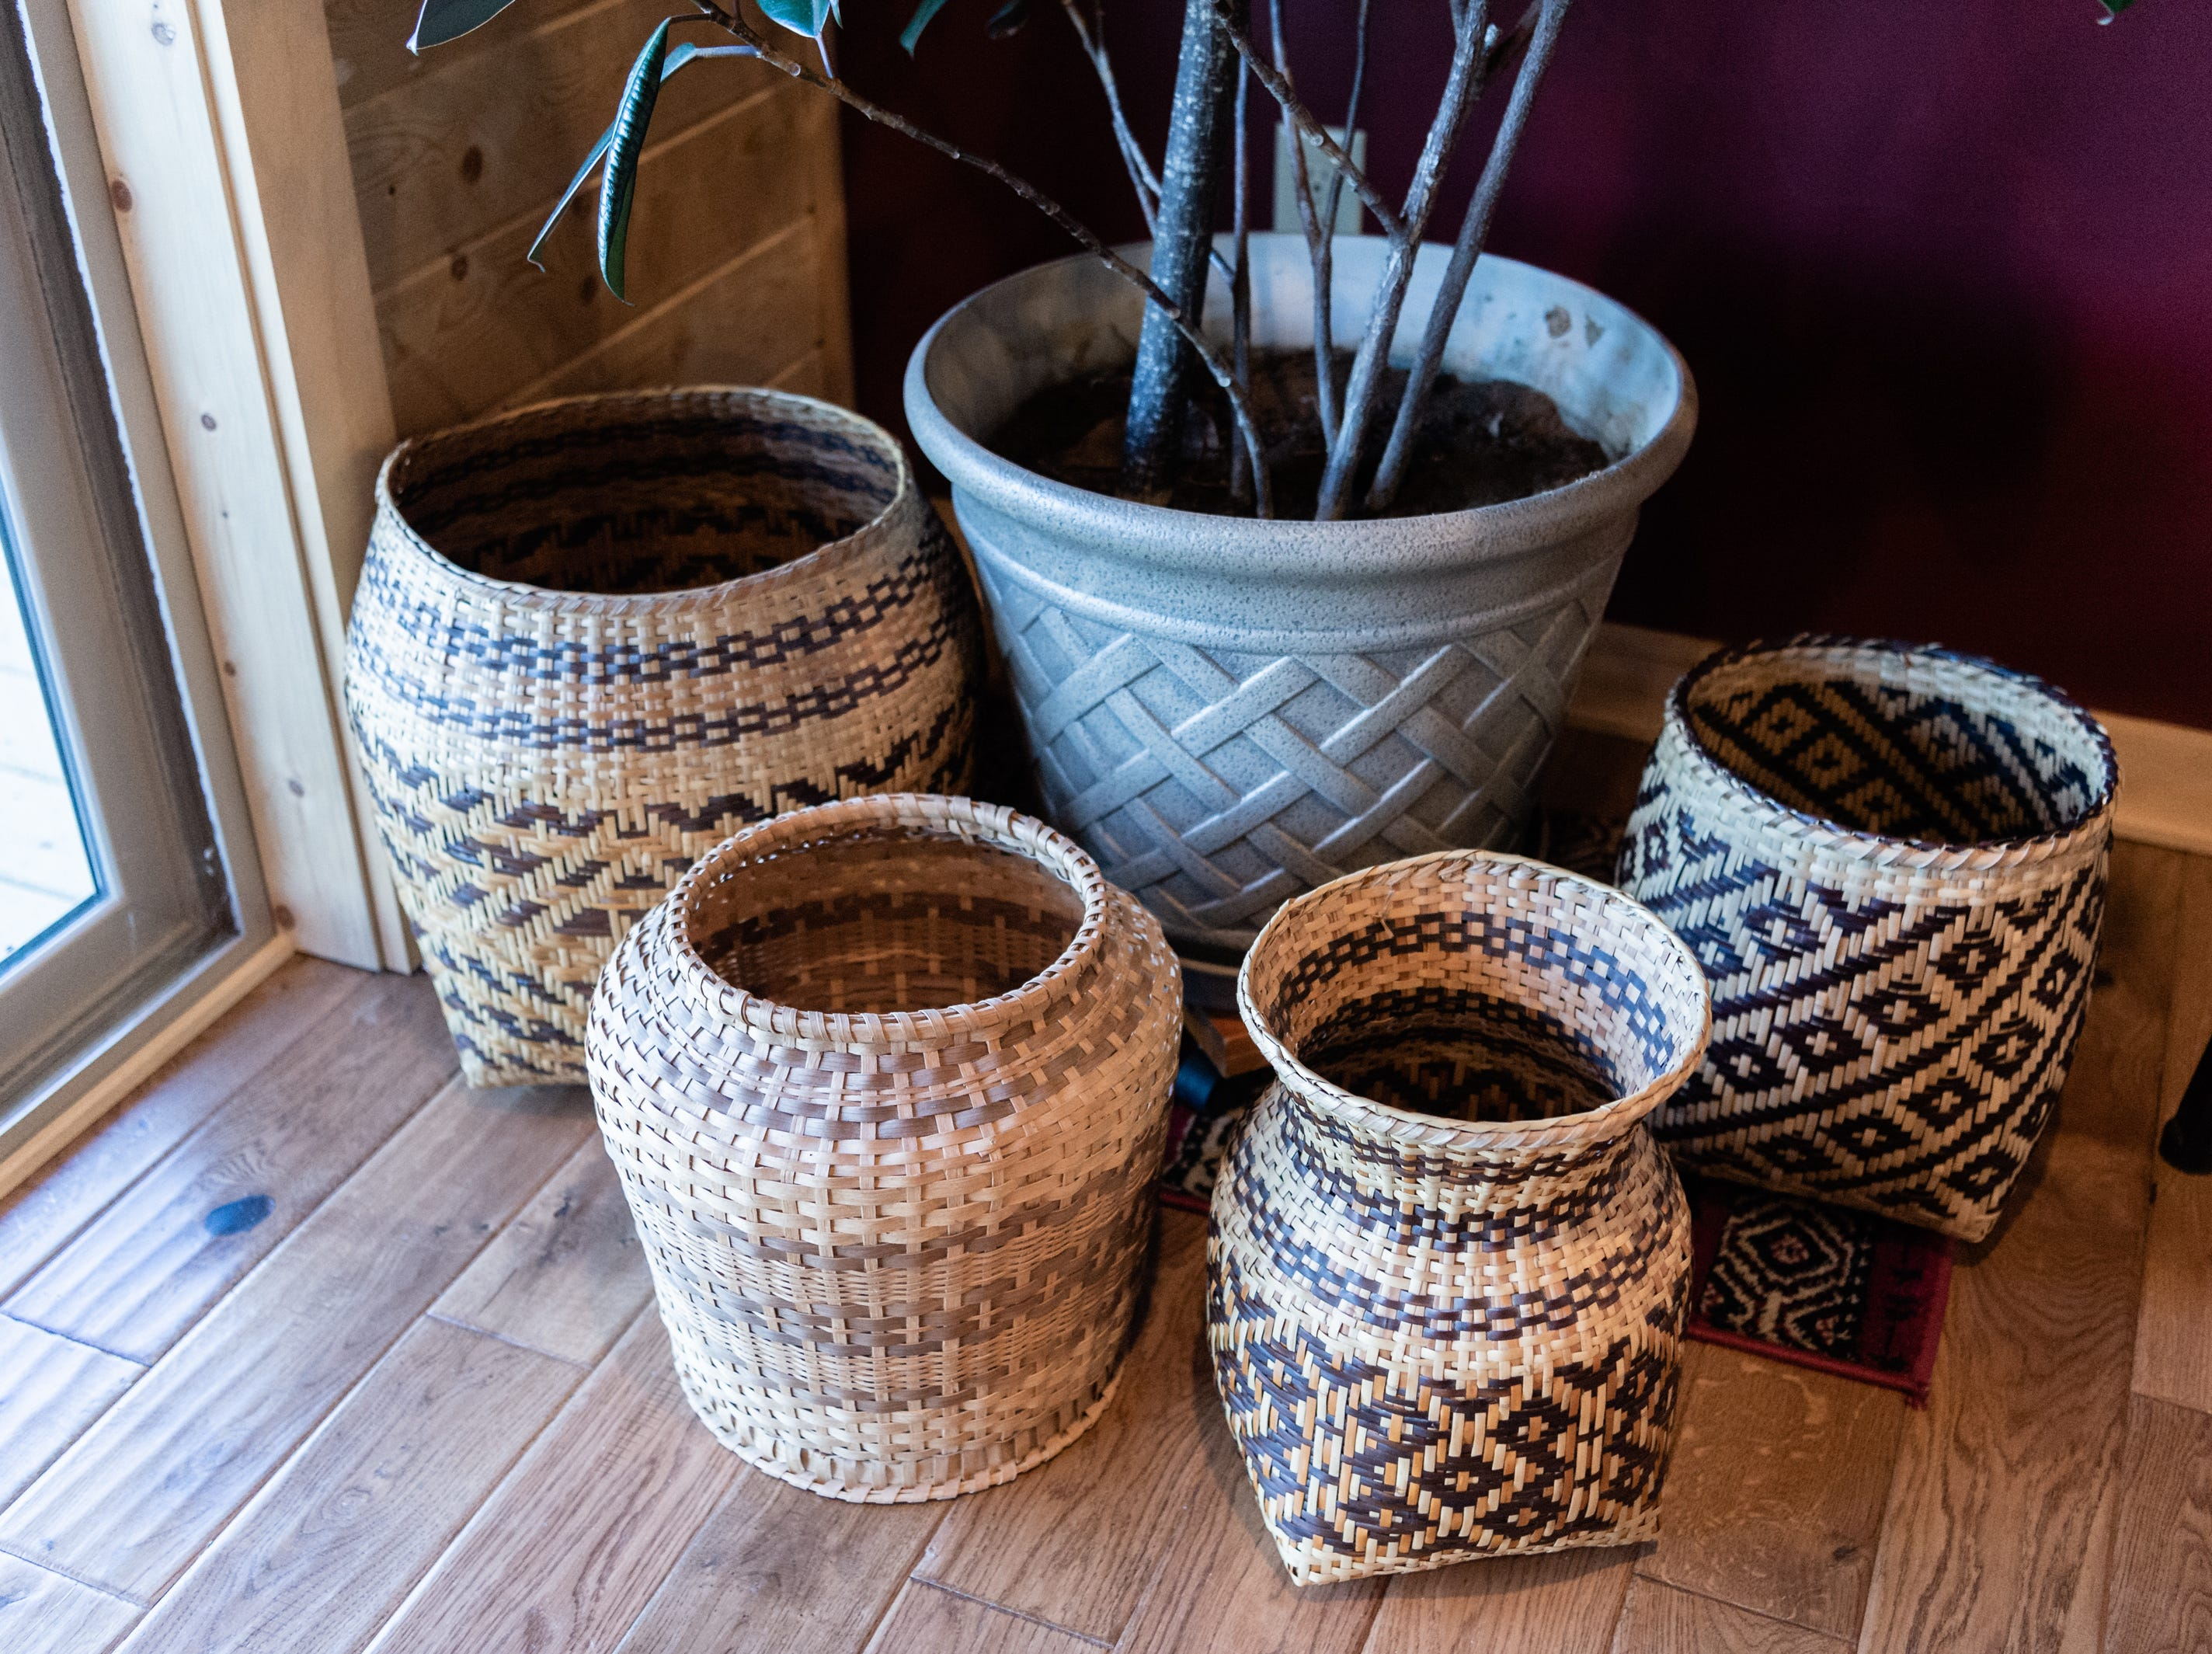 Woven Cherokee baskets in the log cabin home of Vangie Stephens and Tommy Stephens in Cherokee which was designed by Vangie.